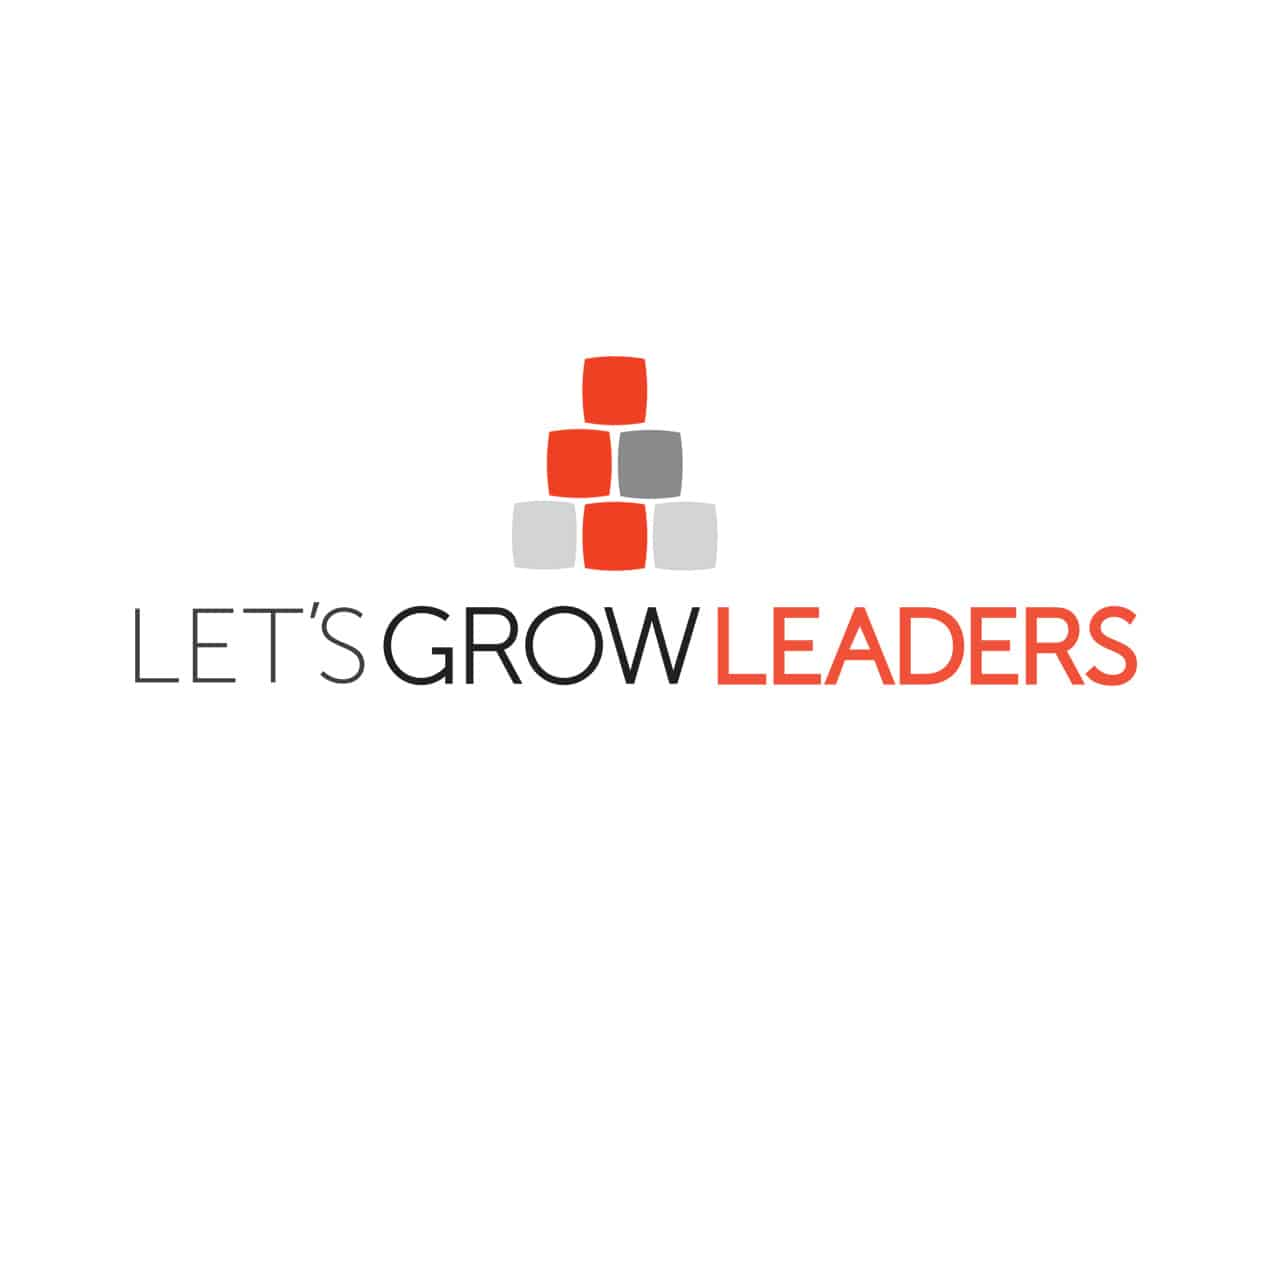 Let's Grow Leaders